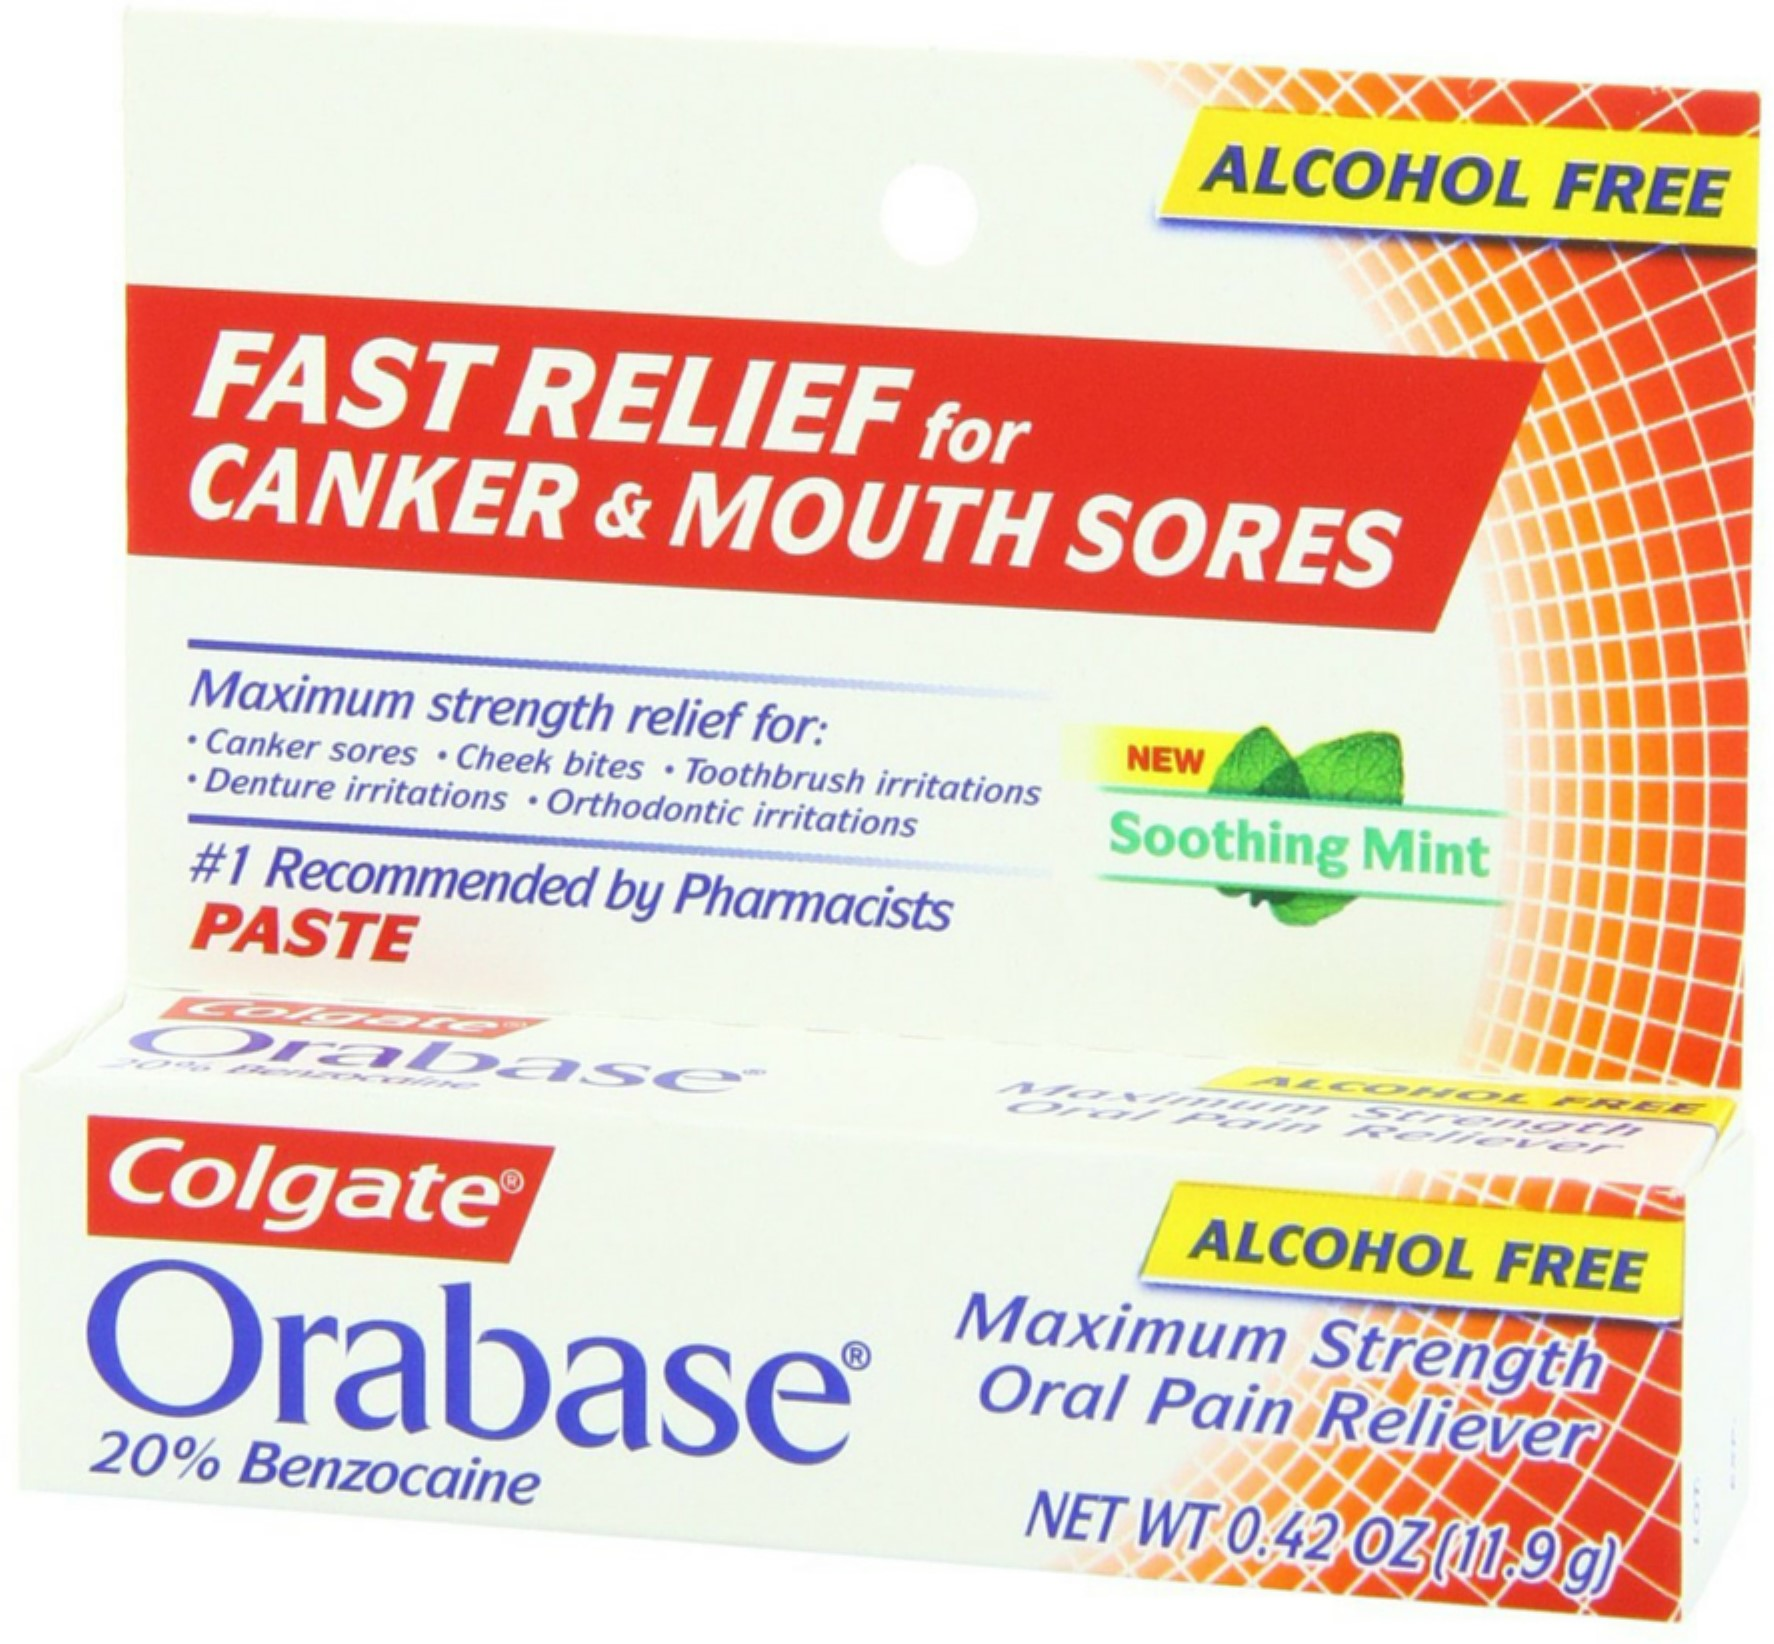 Colgate Orabase Paste 12 g (Pack of 2)